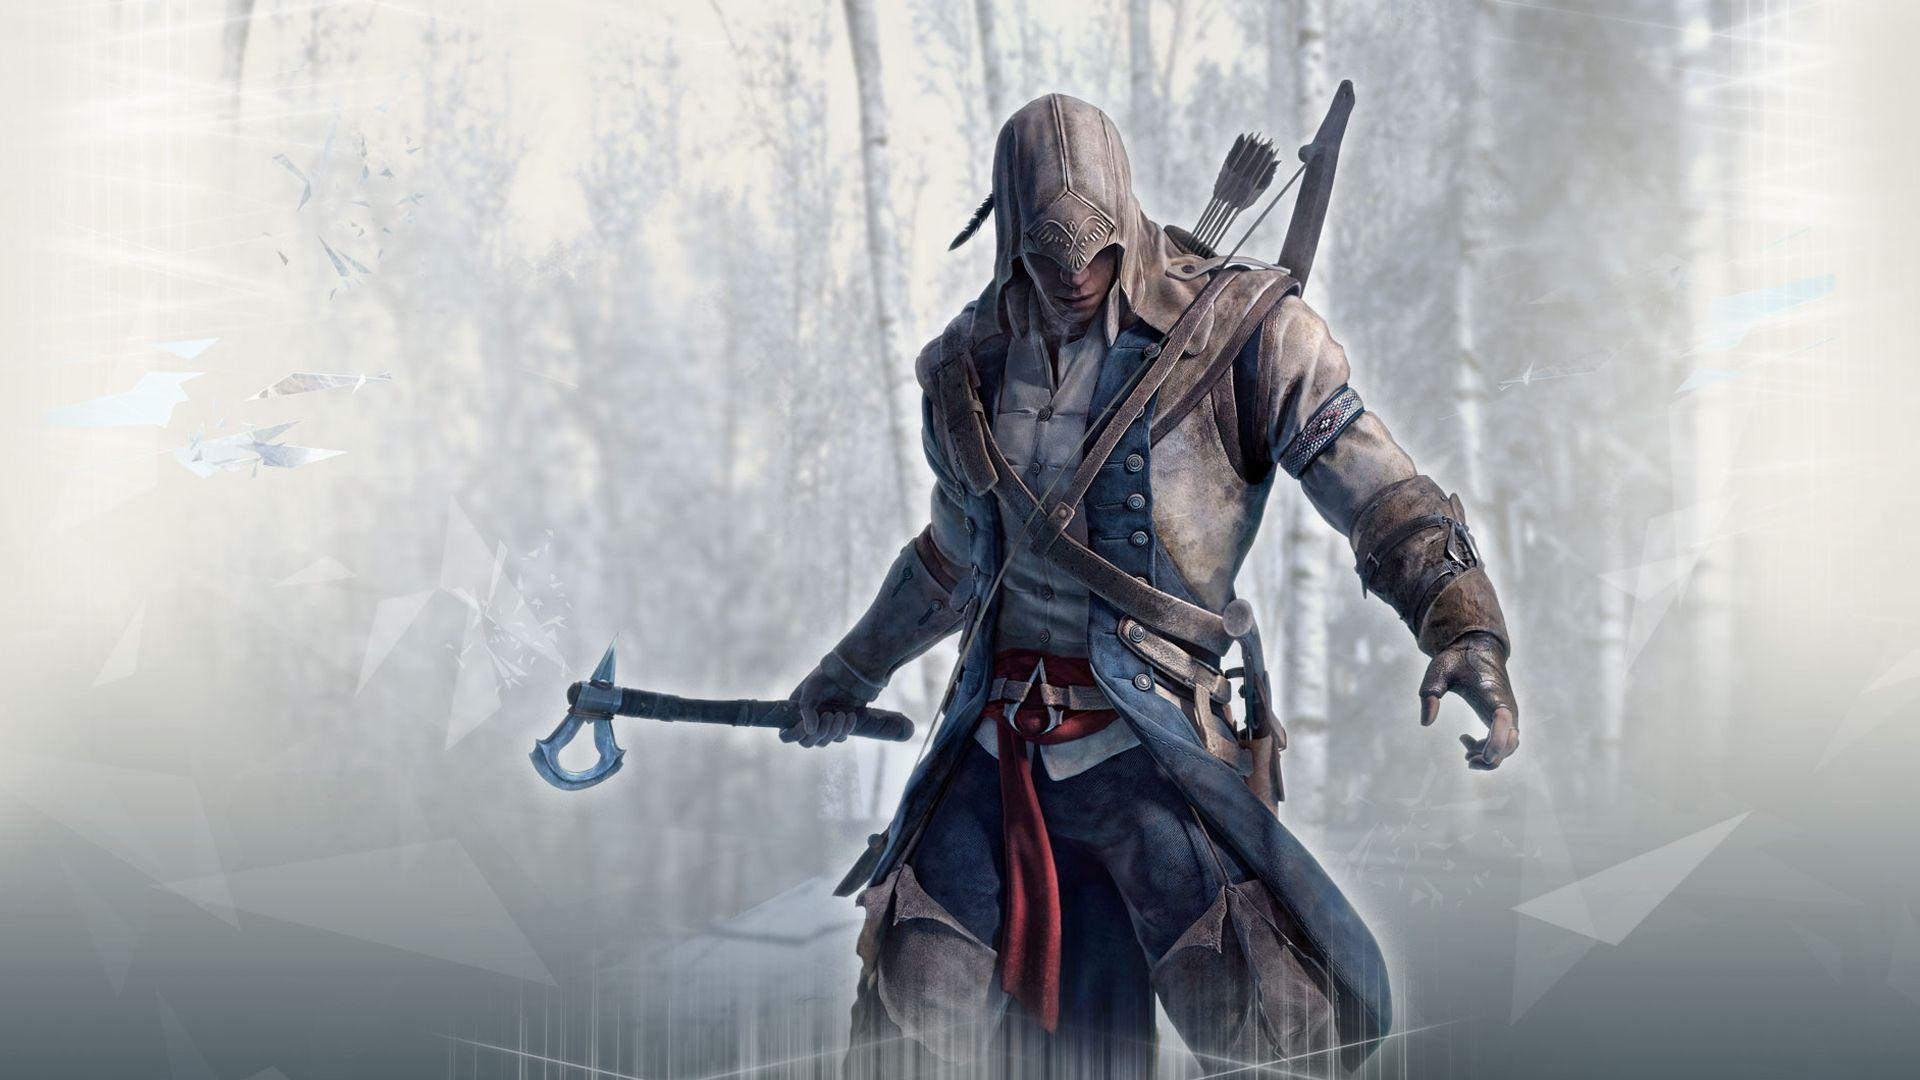 Assassins Creed 3 Wallpapers HD 1920x1080